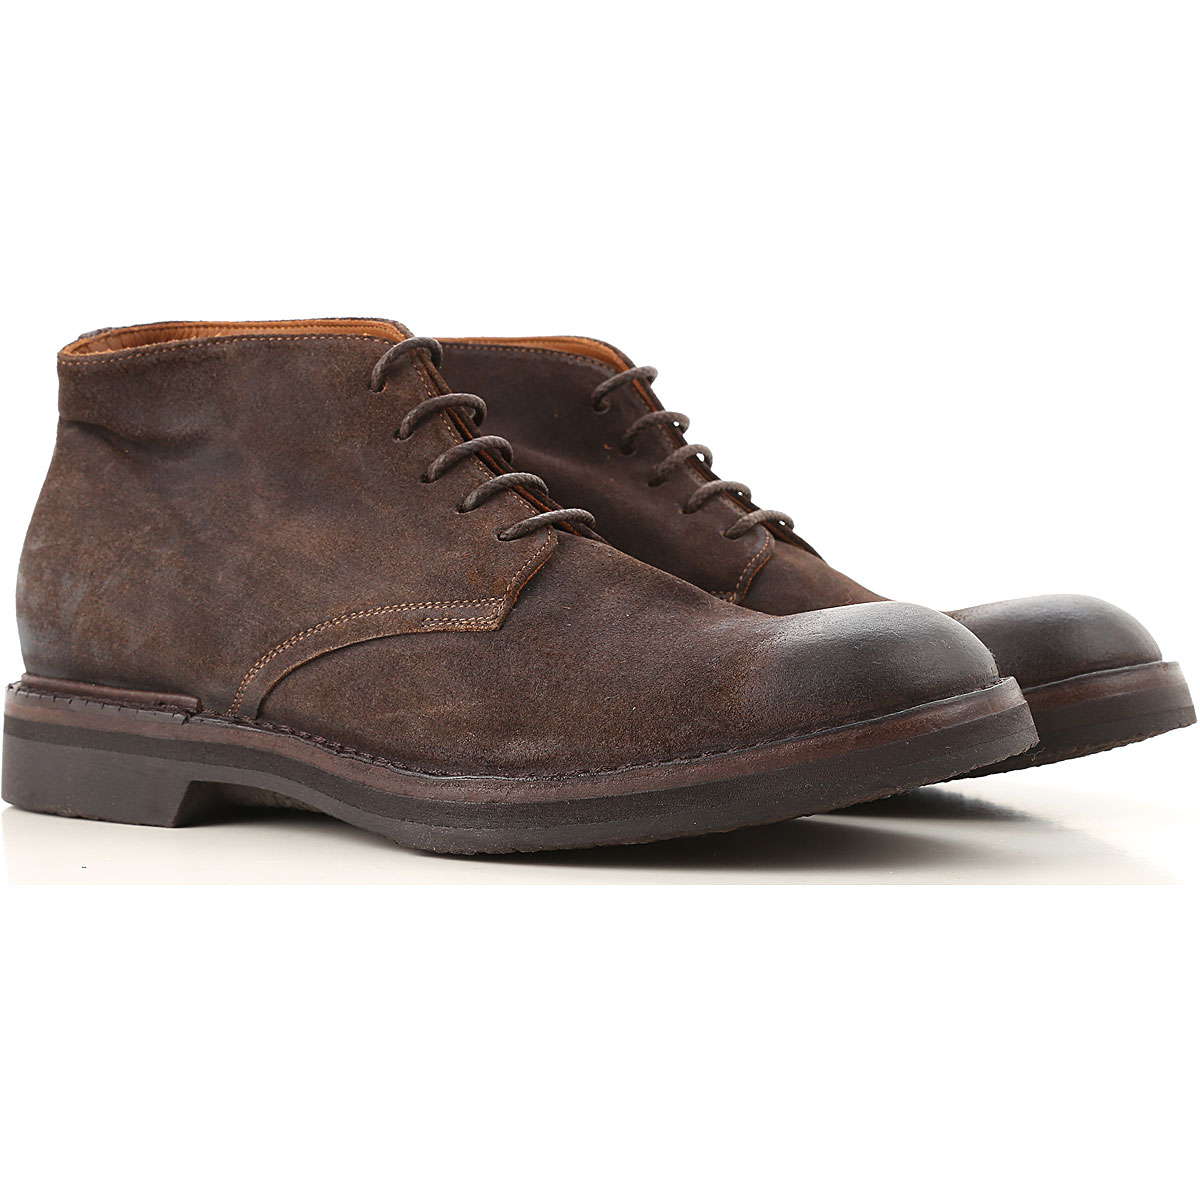 Image of Pantanetti Boots for Men, Booties, Brown, Suede leather, 2017, 10 10.5 7.5 8